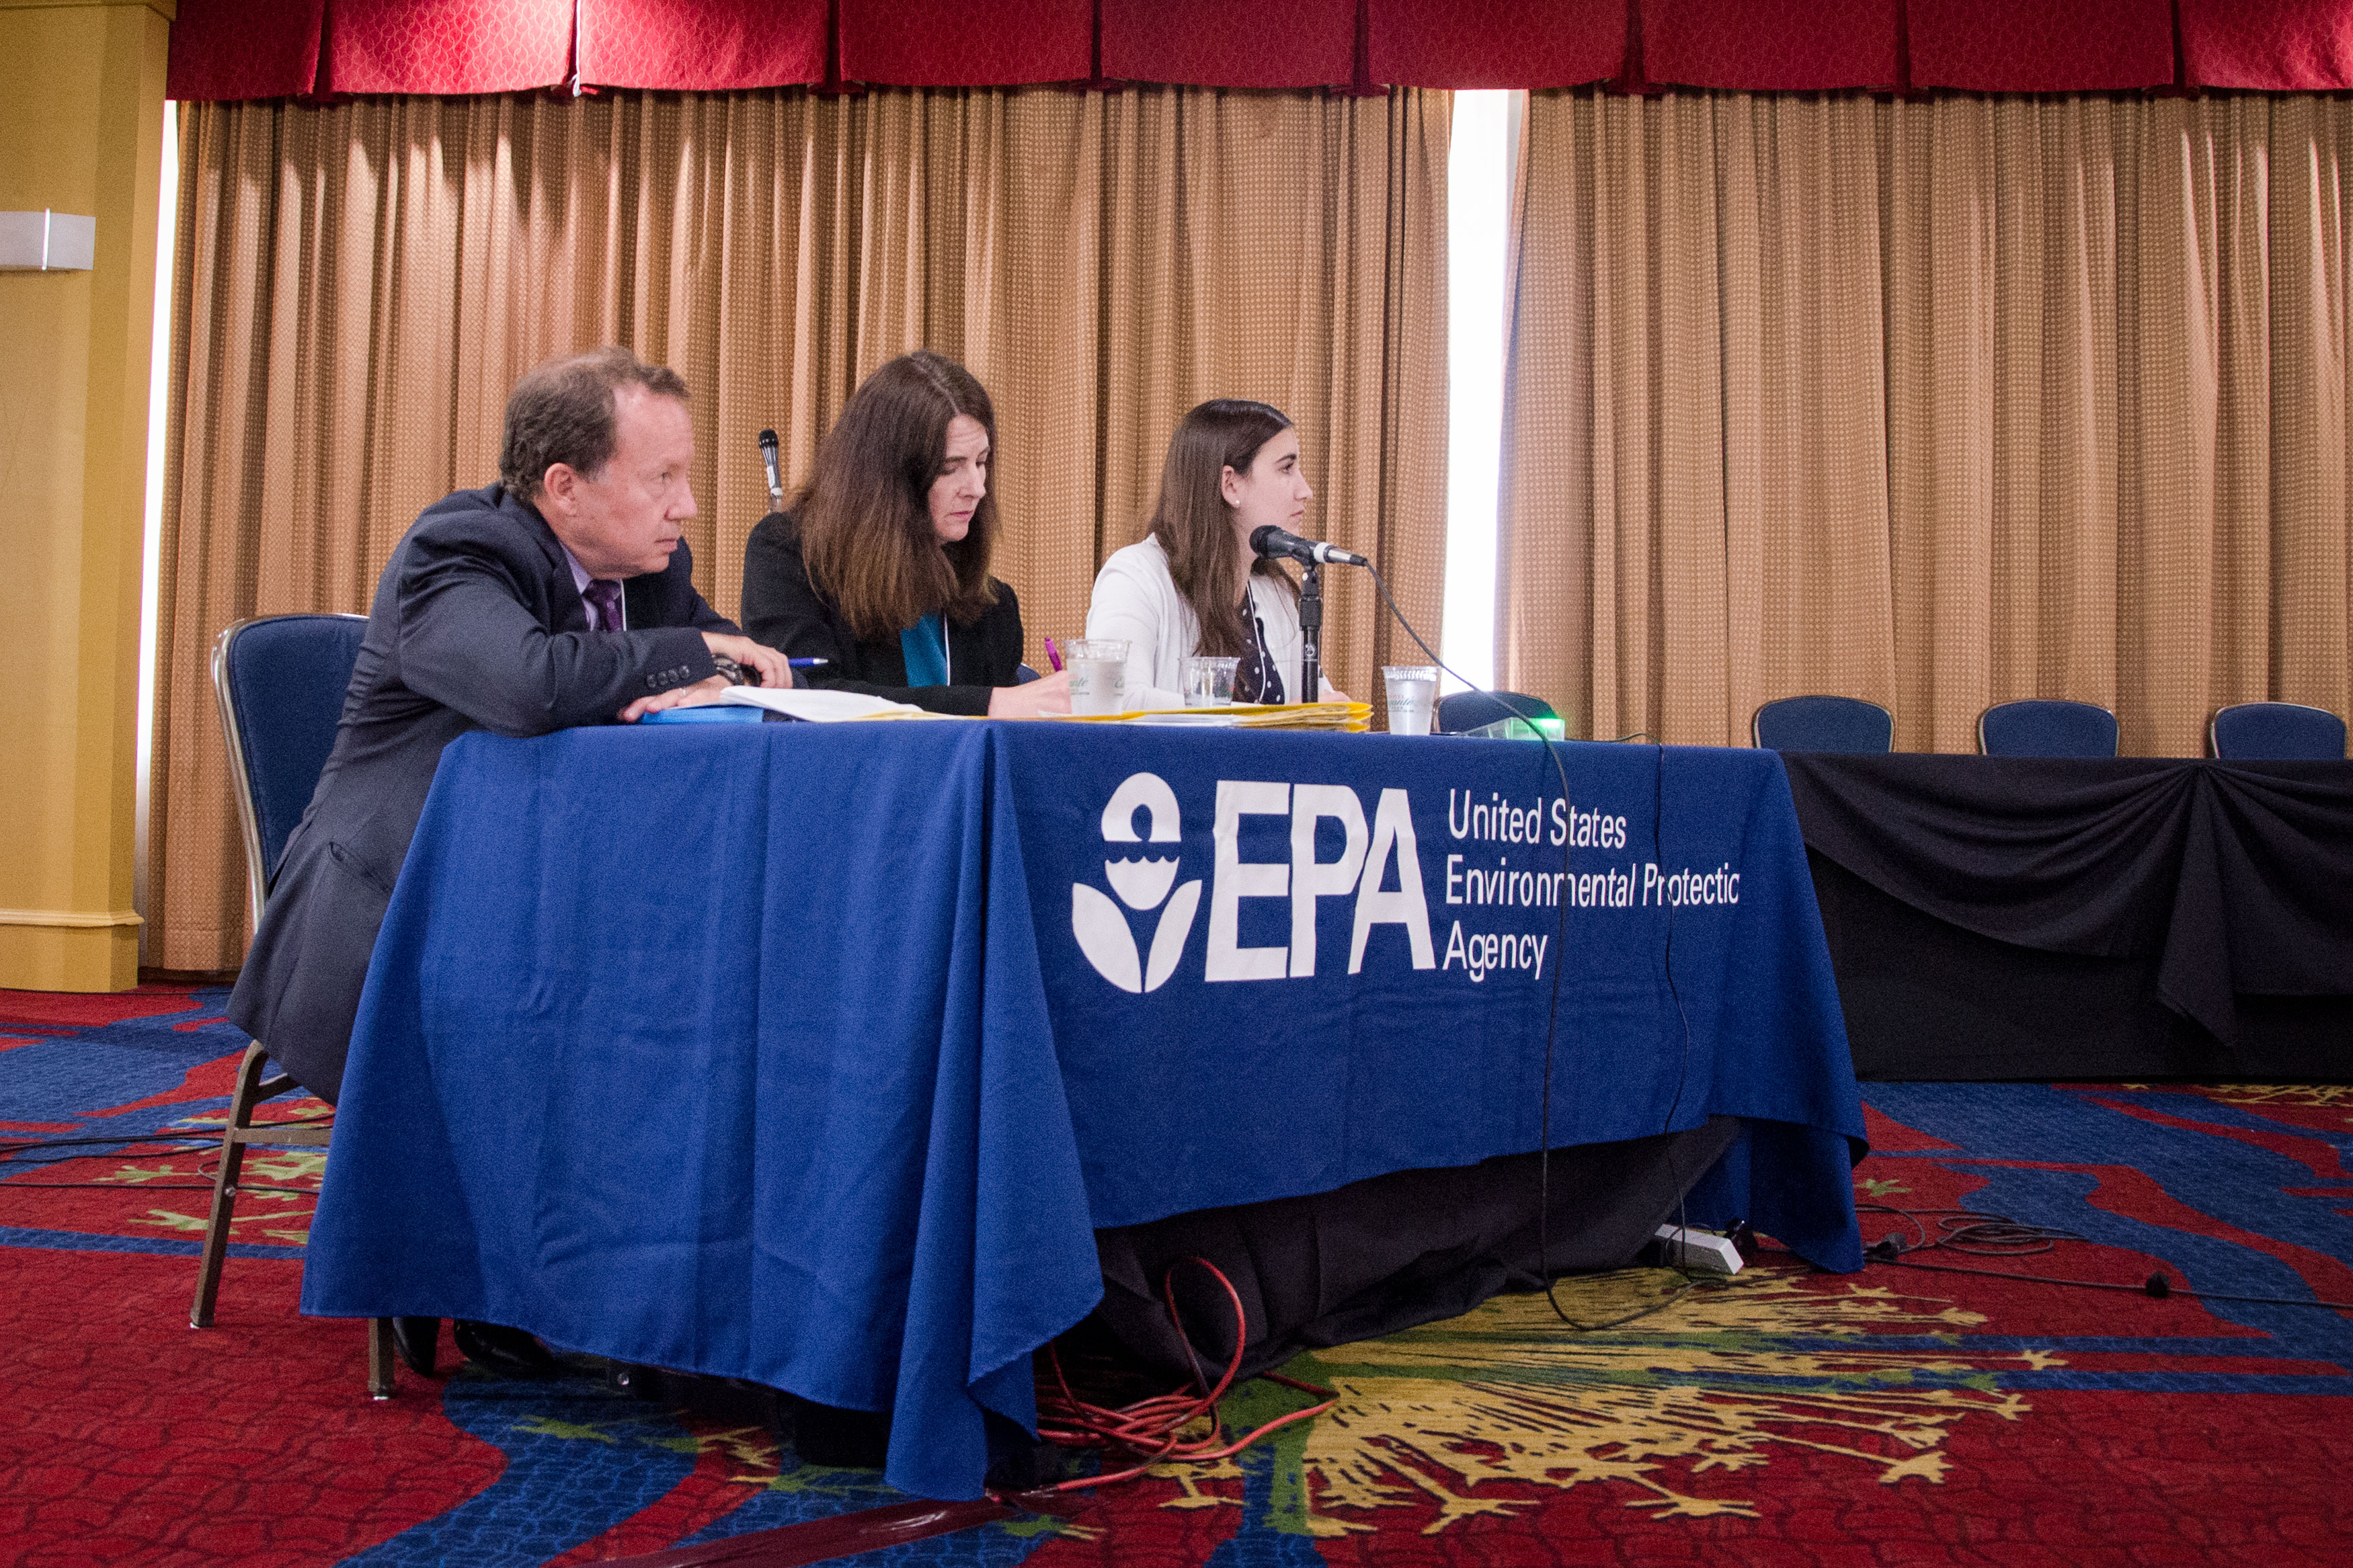 <p>Doug Benevento, regional administrator for EPA's Mountains & Plains Region 8, left, and staff listen to speakers during a PFCs community engagement event in Colorado Springs.</p>